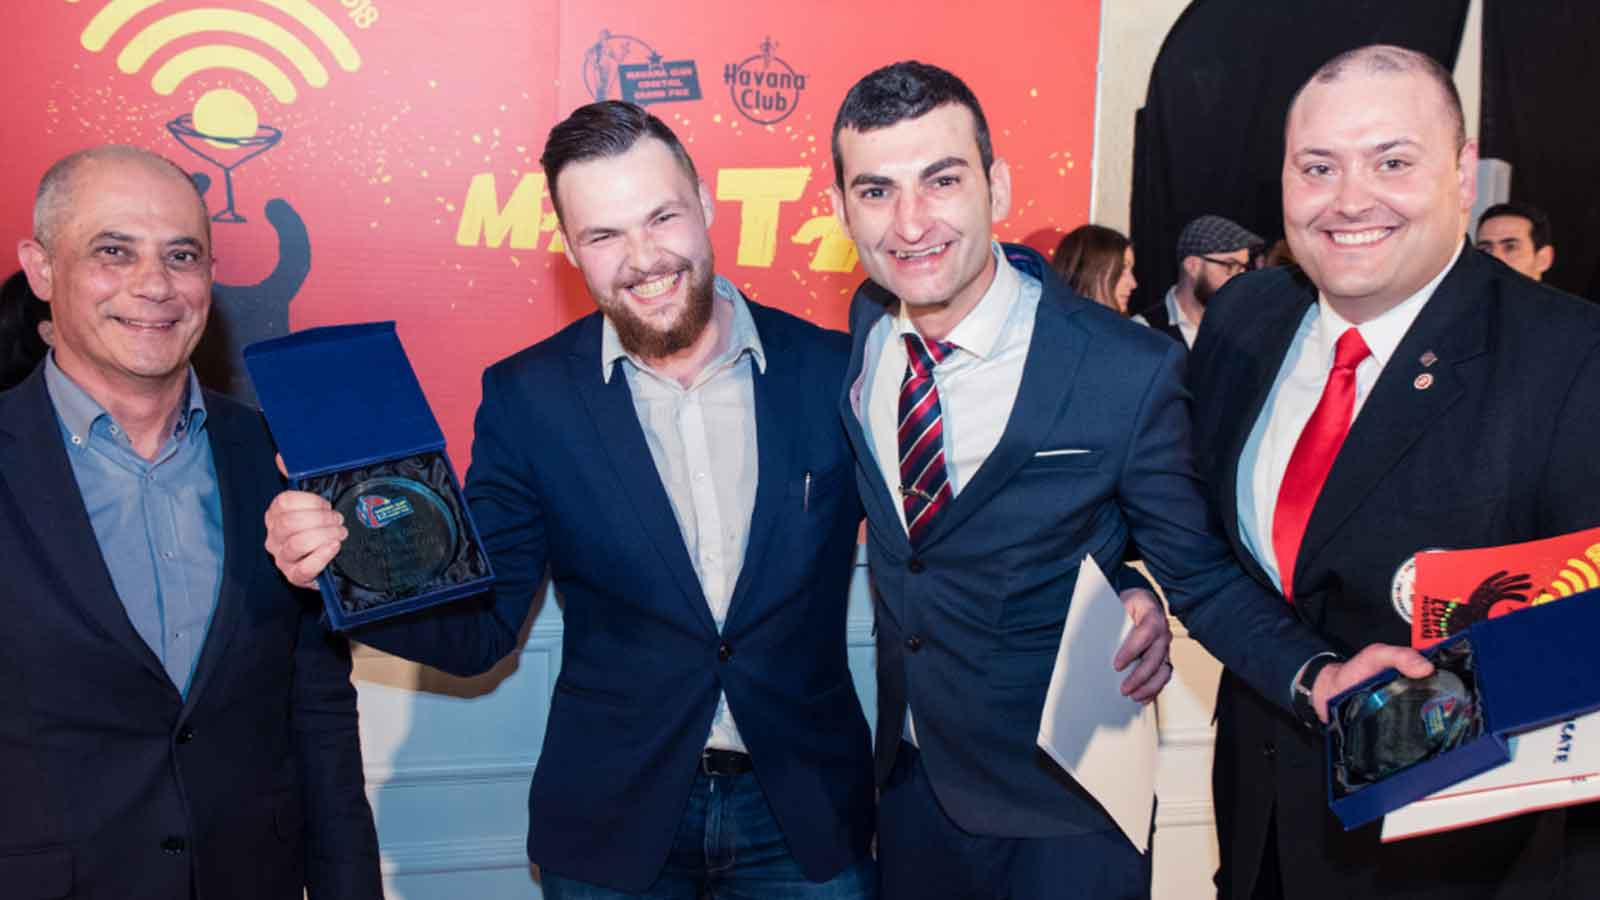 Bartender from Malta to compete in the Havana Club Cocktail Grand Prix in Cuba